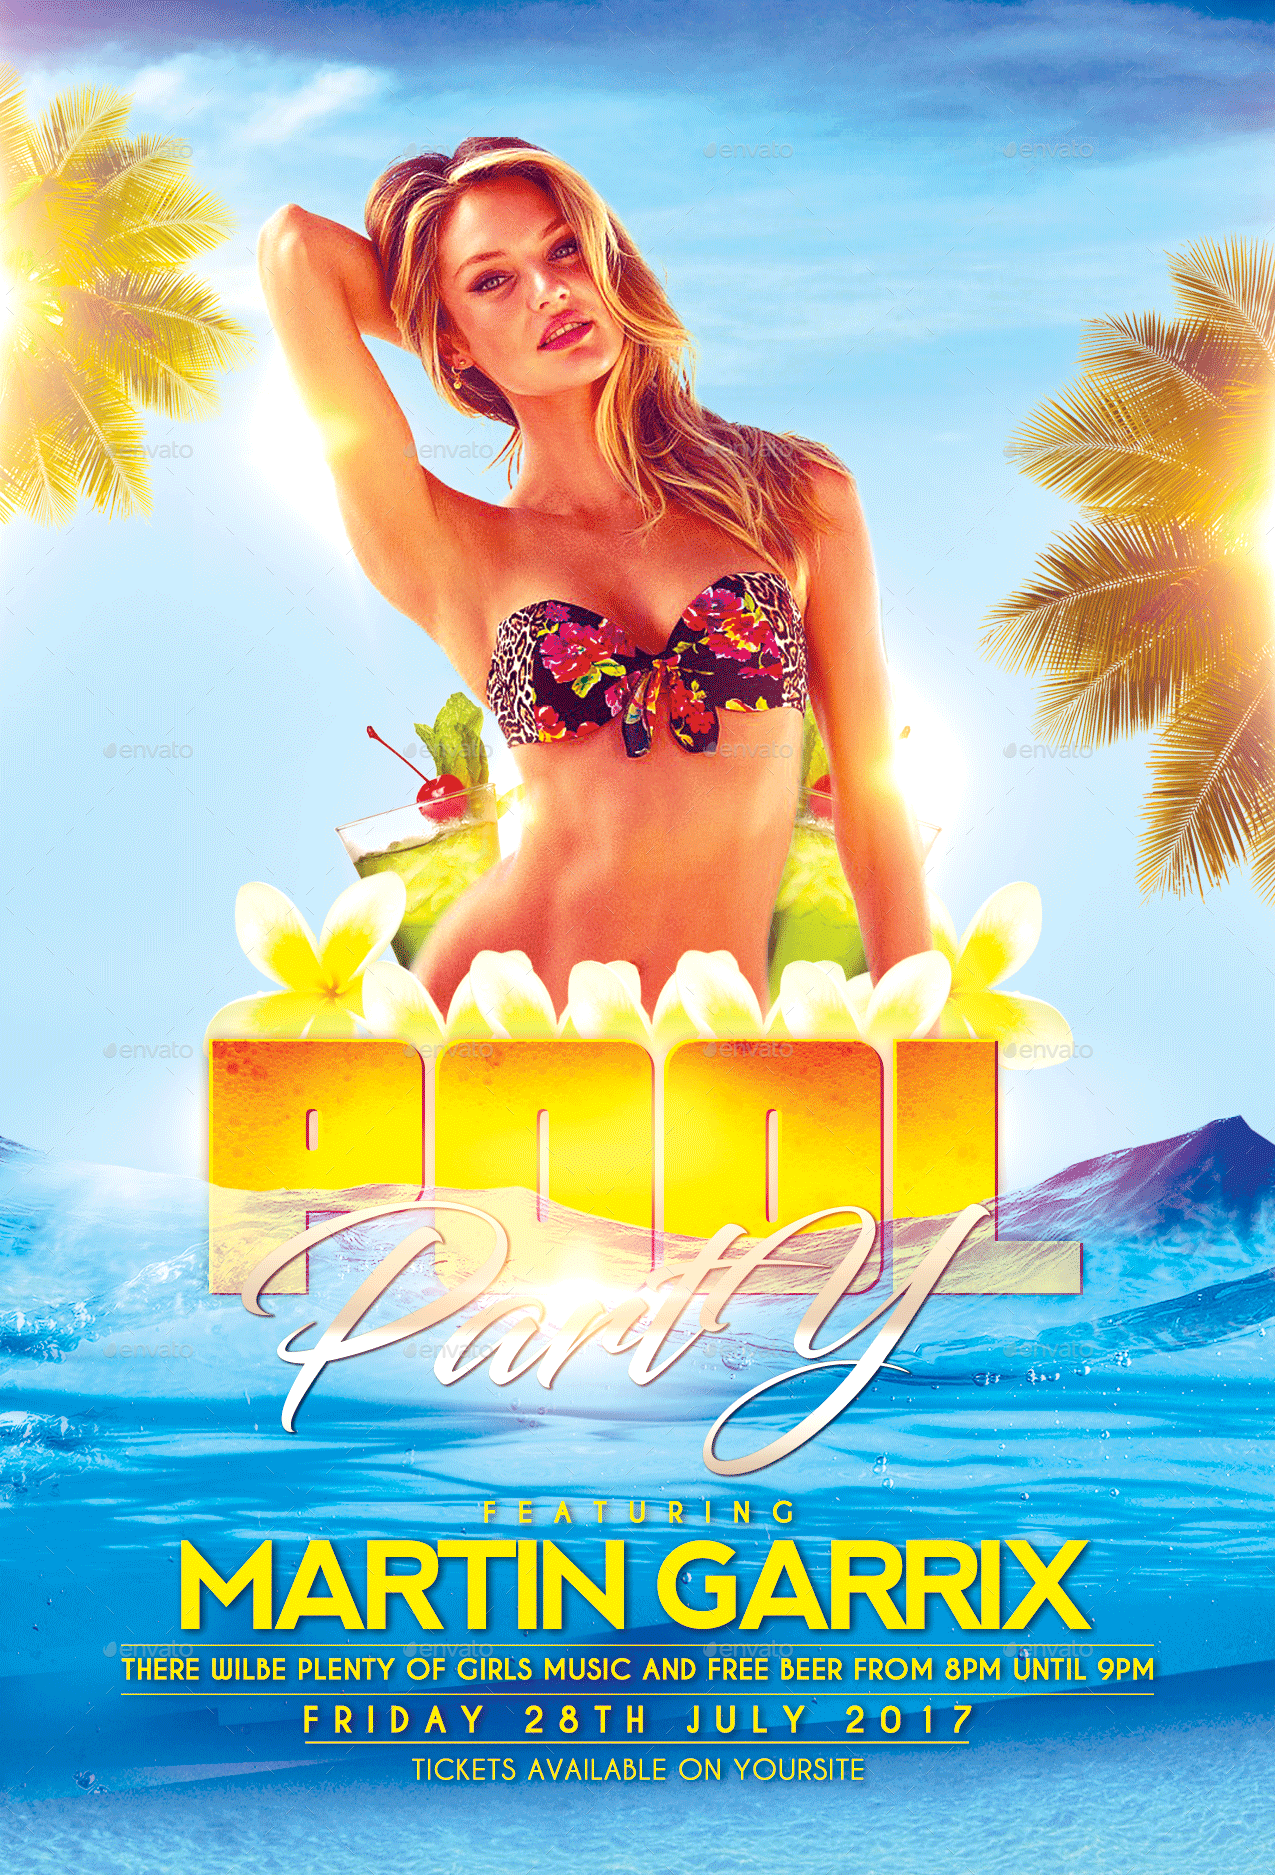 Pool Party Flyer Template by FASdesigner – Pool Party Flyer Template